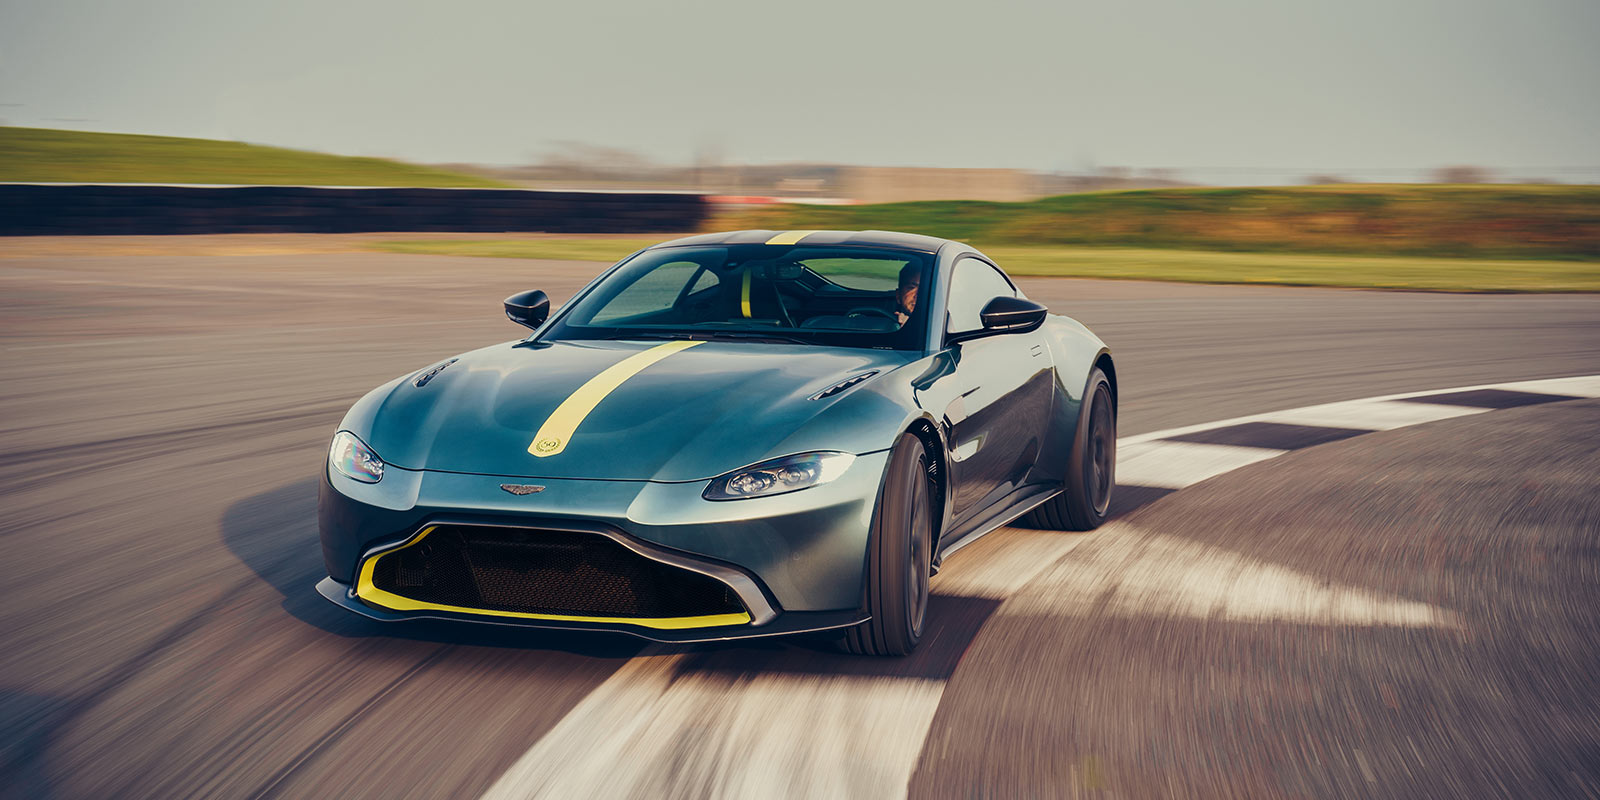 Aston Martin Vantage AMR - Limited Edition - Pure, Engaging Performance image 1